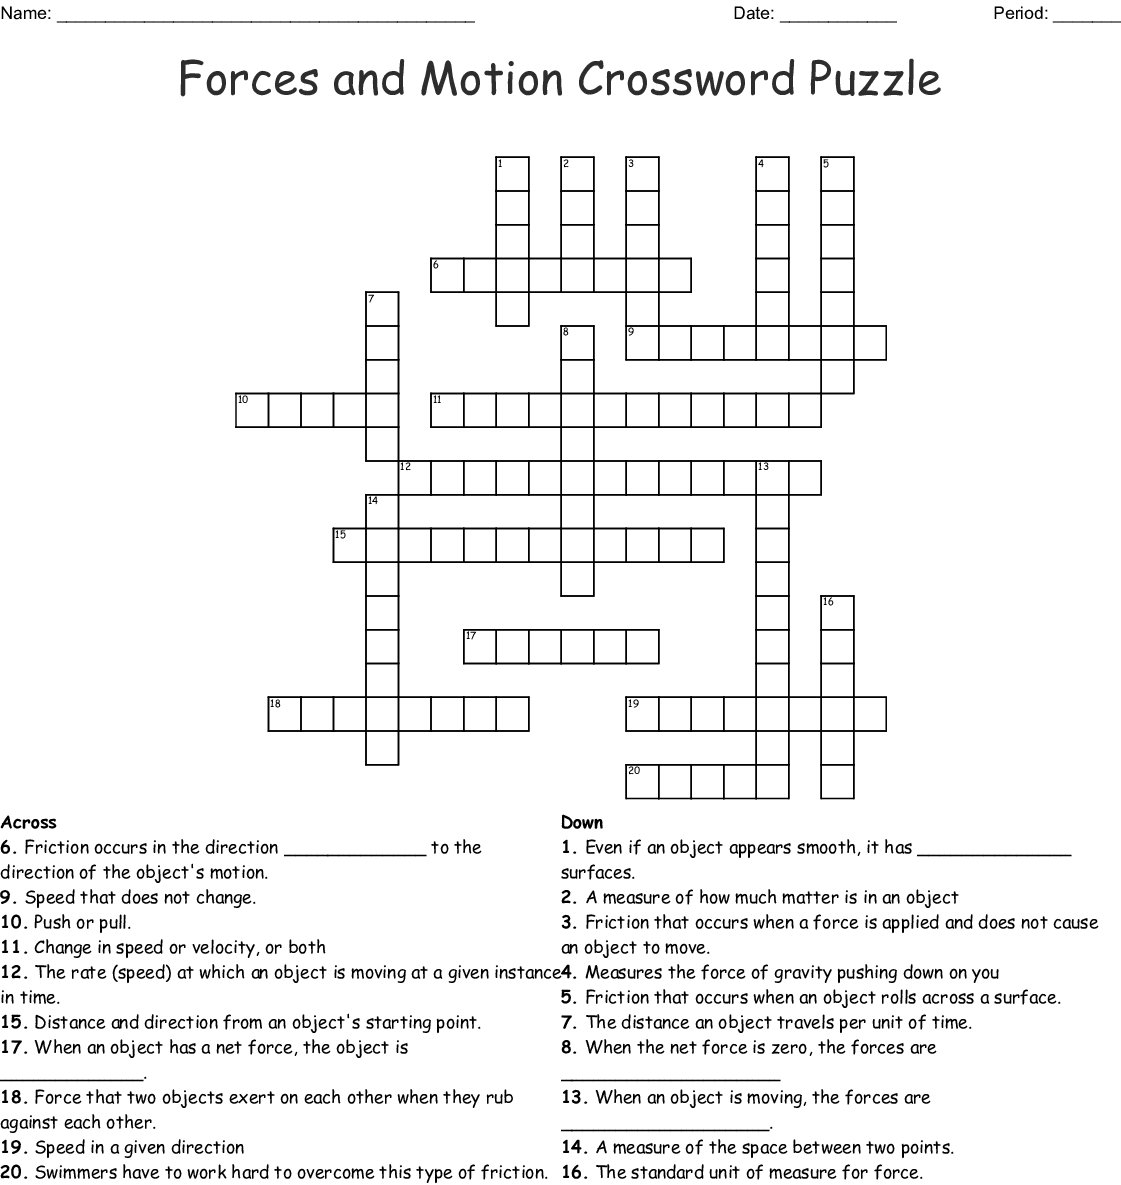 Forces And Motion Crossword Puzzle